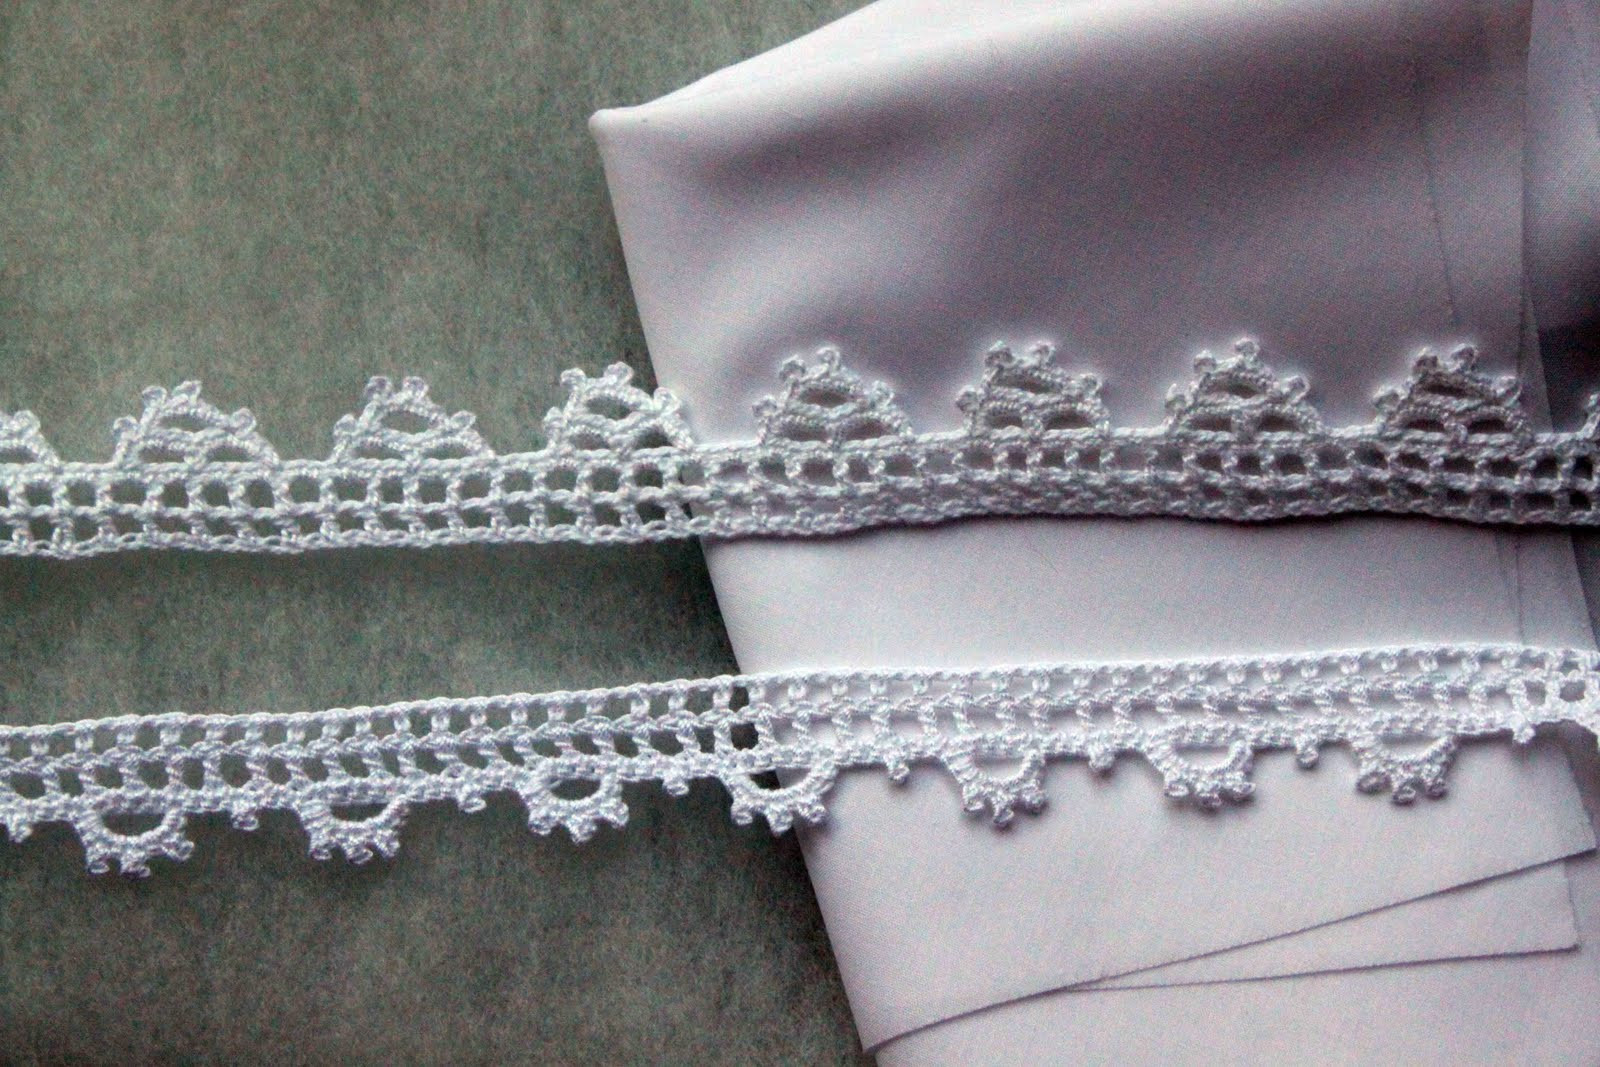 Lace Edging Inspirational Irish Crochet Edging Patterns – Easy Crochet Patterns Of Incredible 44 Ideas Lace Edging